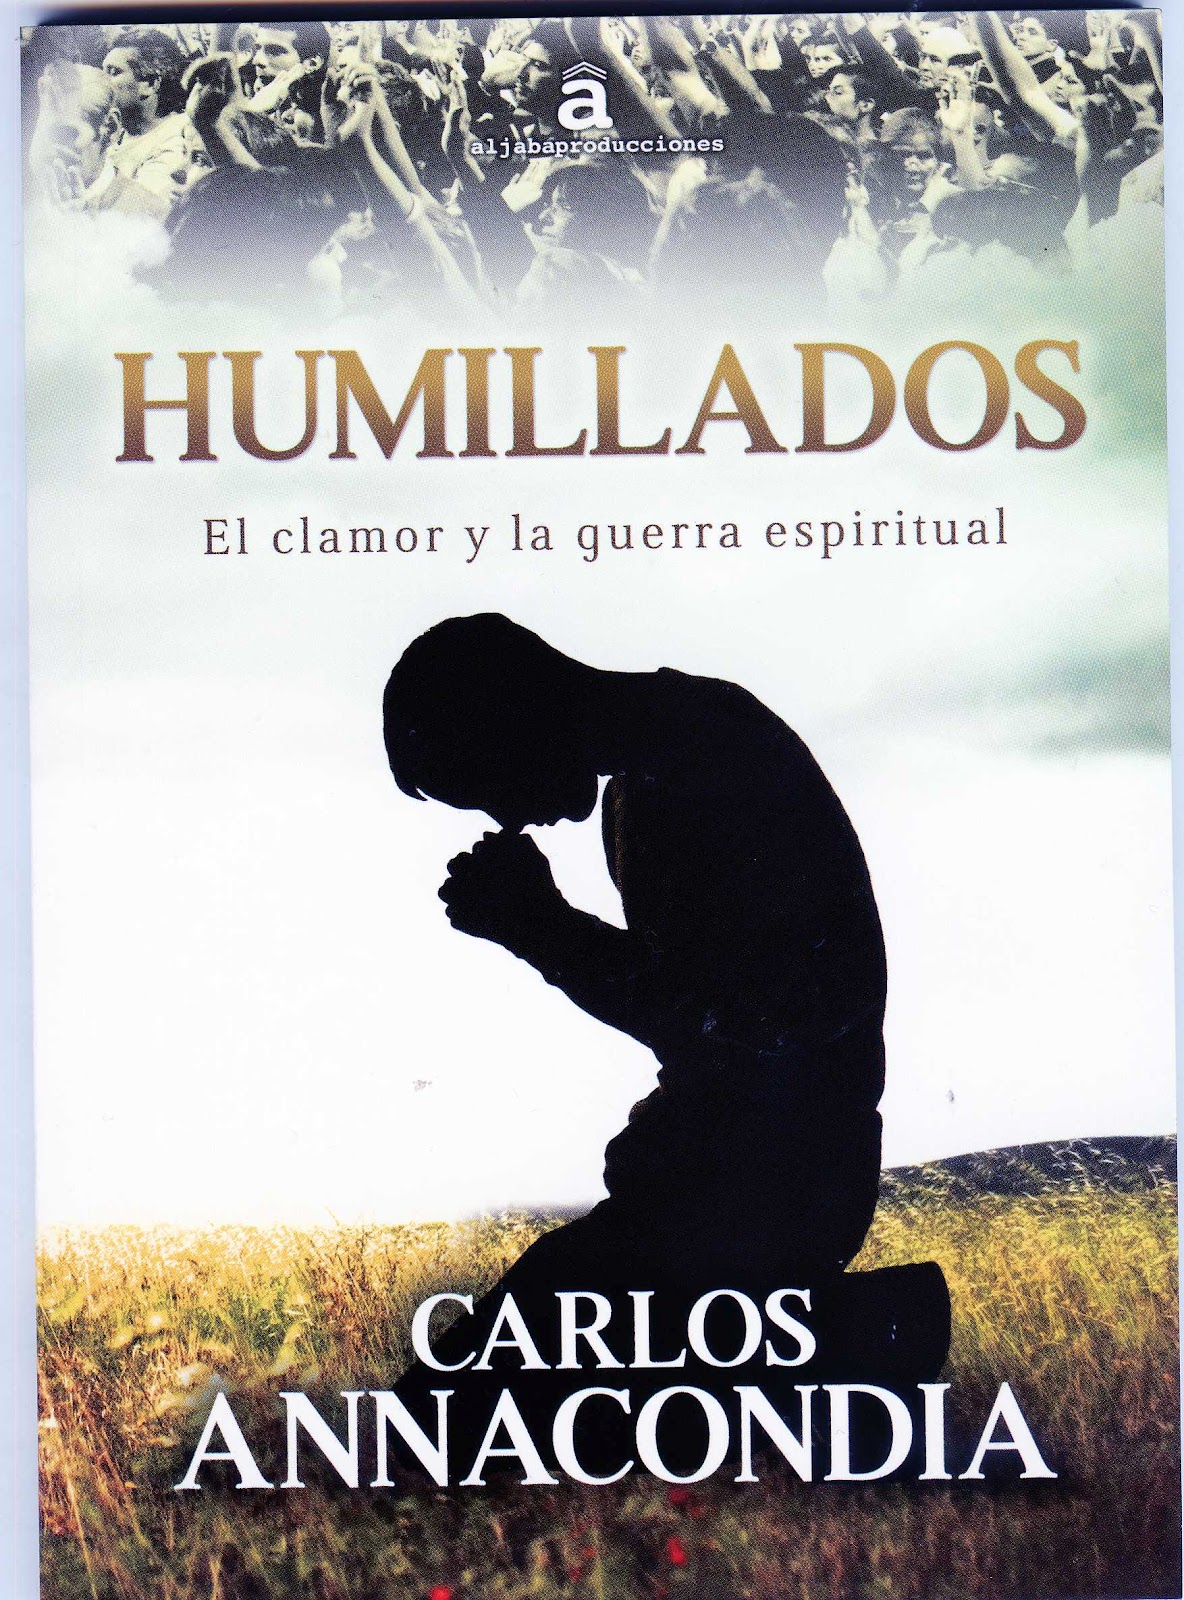 video pastor carlos anacondia argentina: